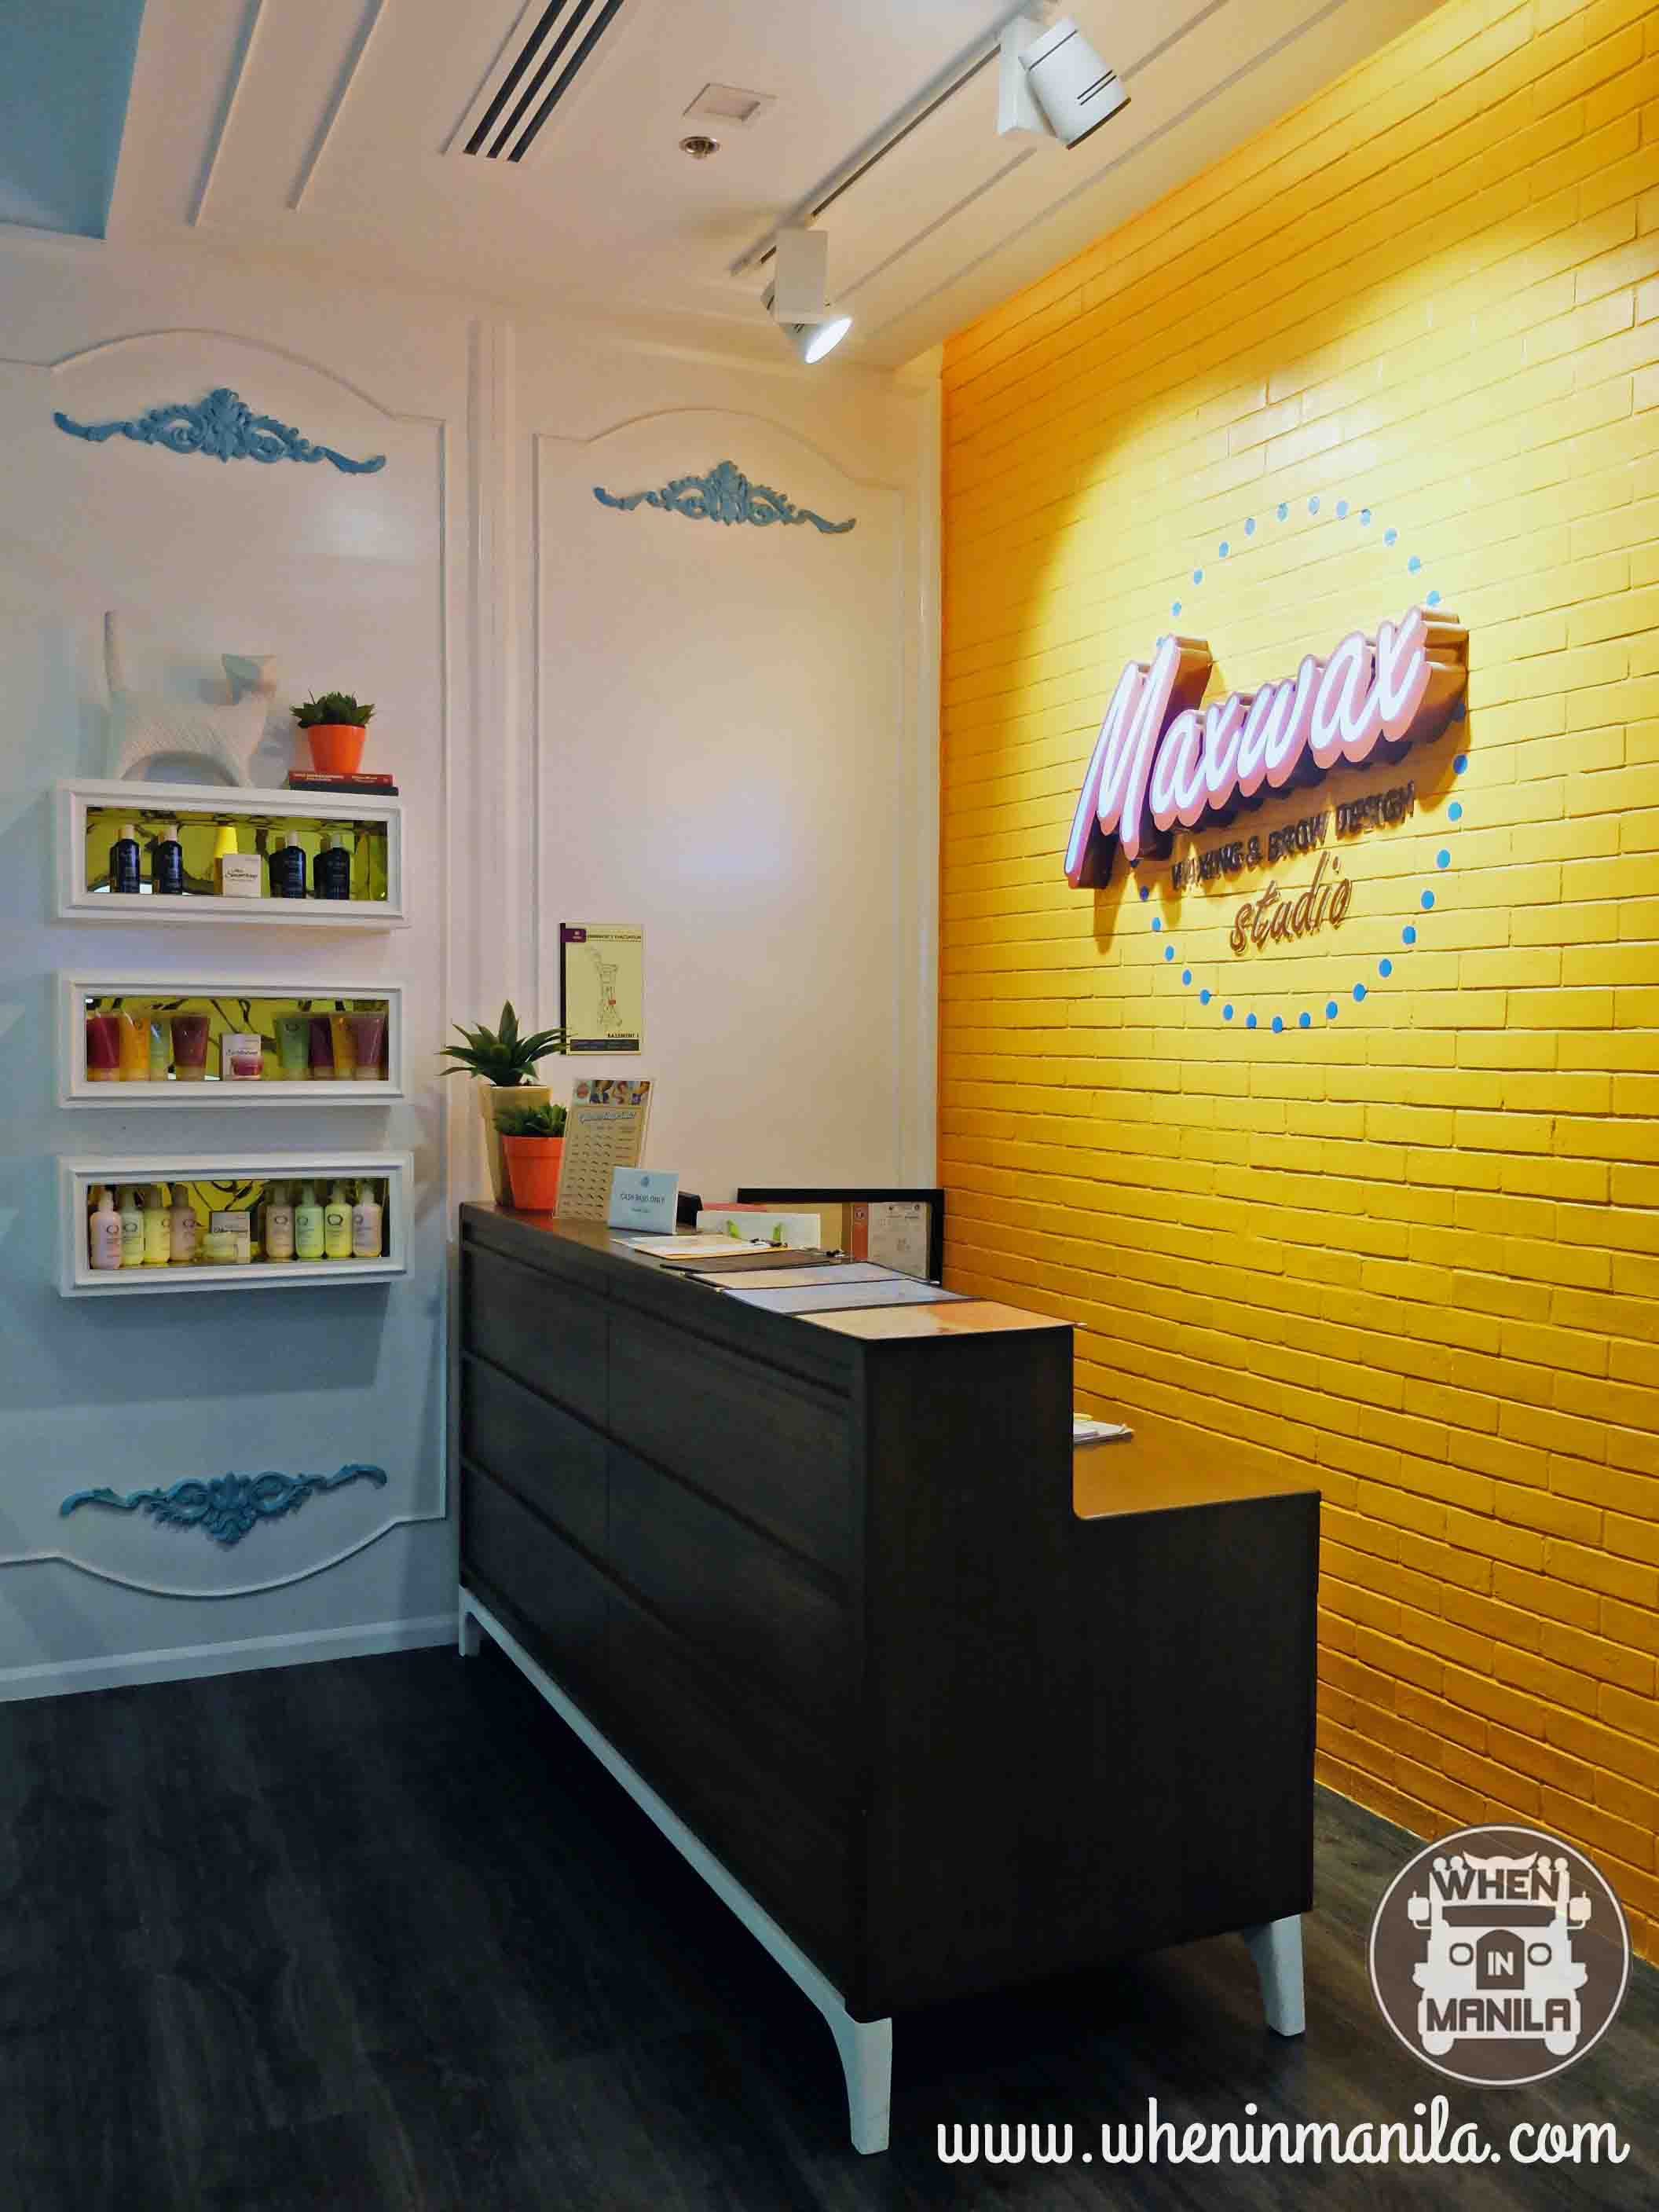 Maxwax Waxing And Brow Design Studio Now Open At Sm Aura When In